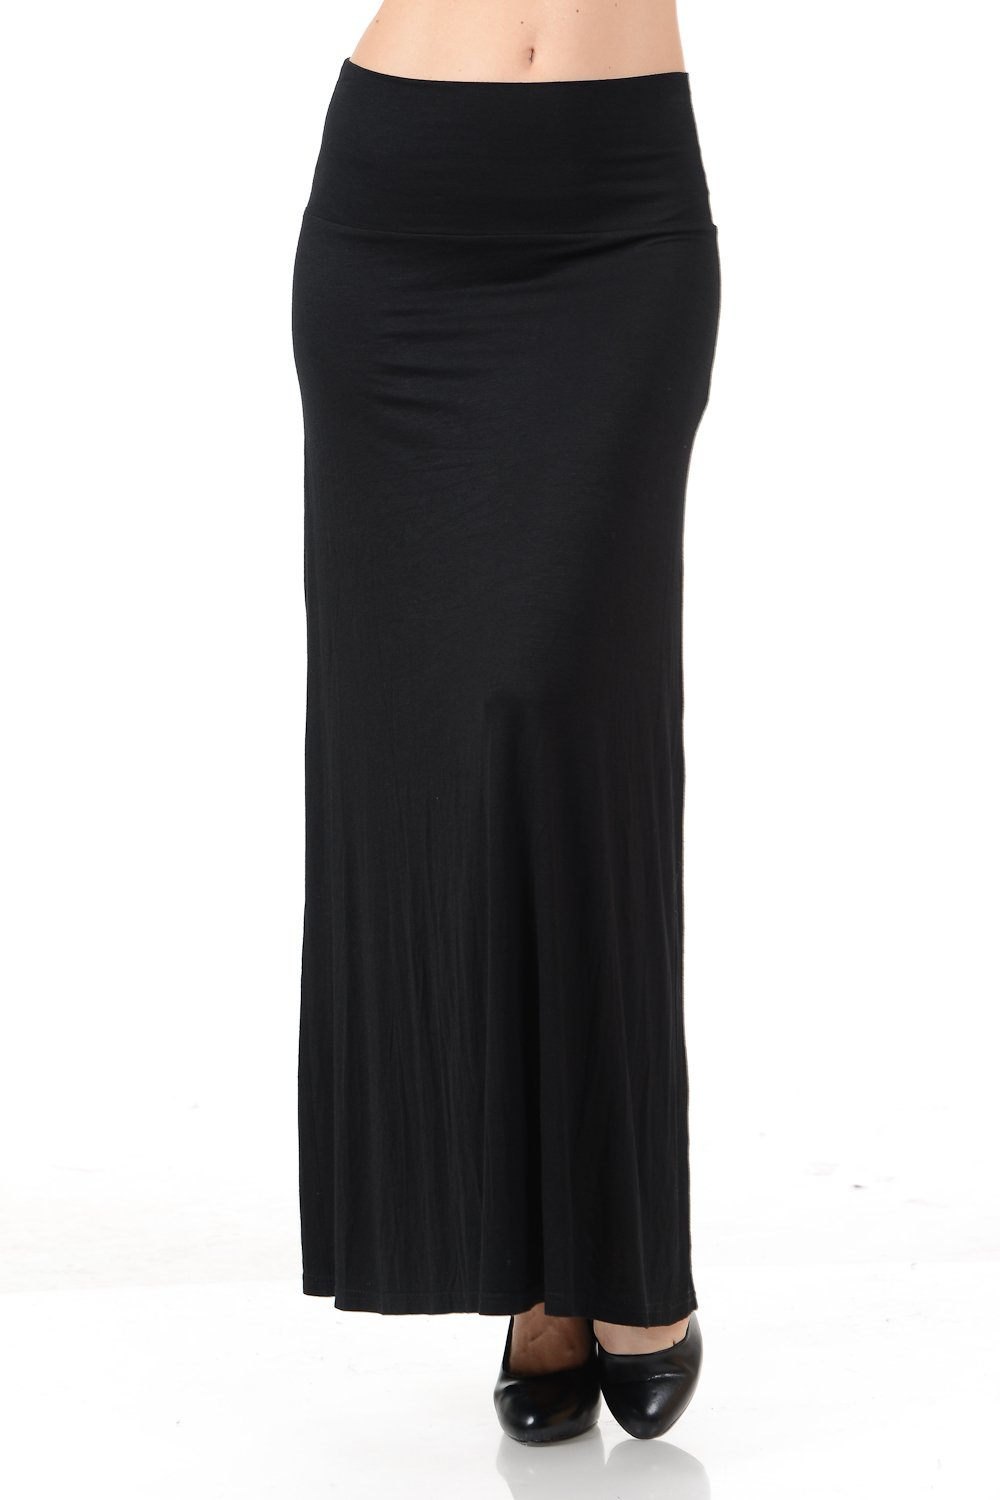 Maryclan Women's Solid High Waisted Full Length Fold Over Flowy Maxi Skirt (Large, Black)